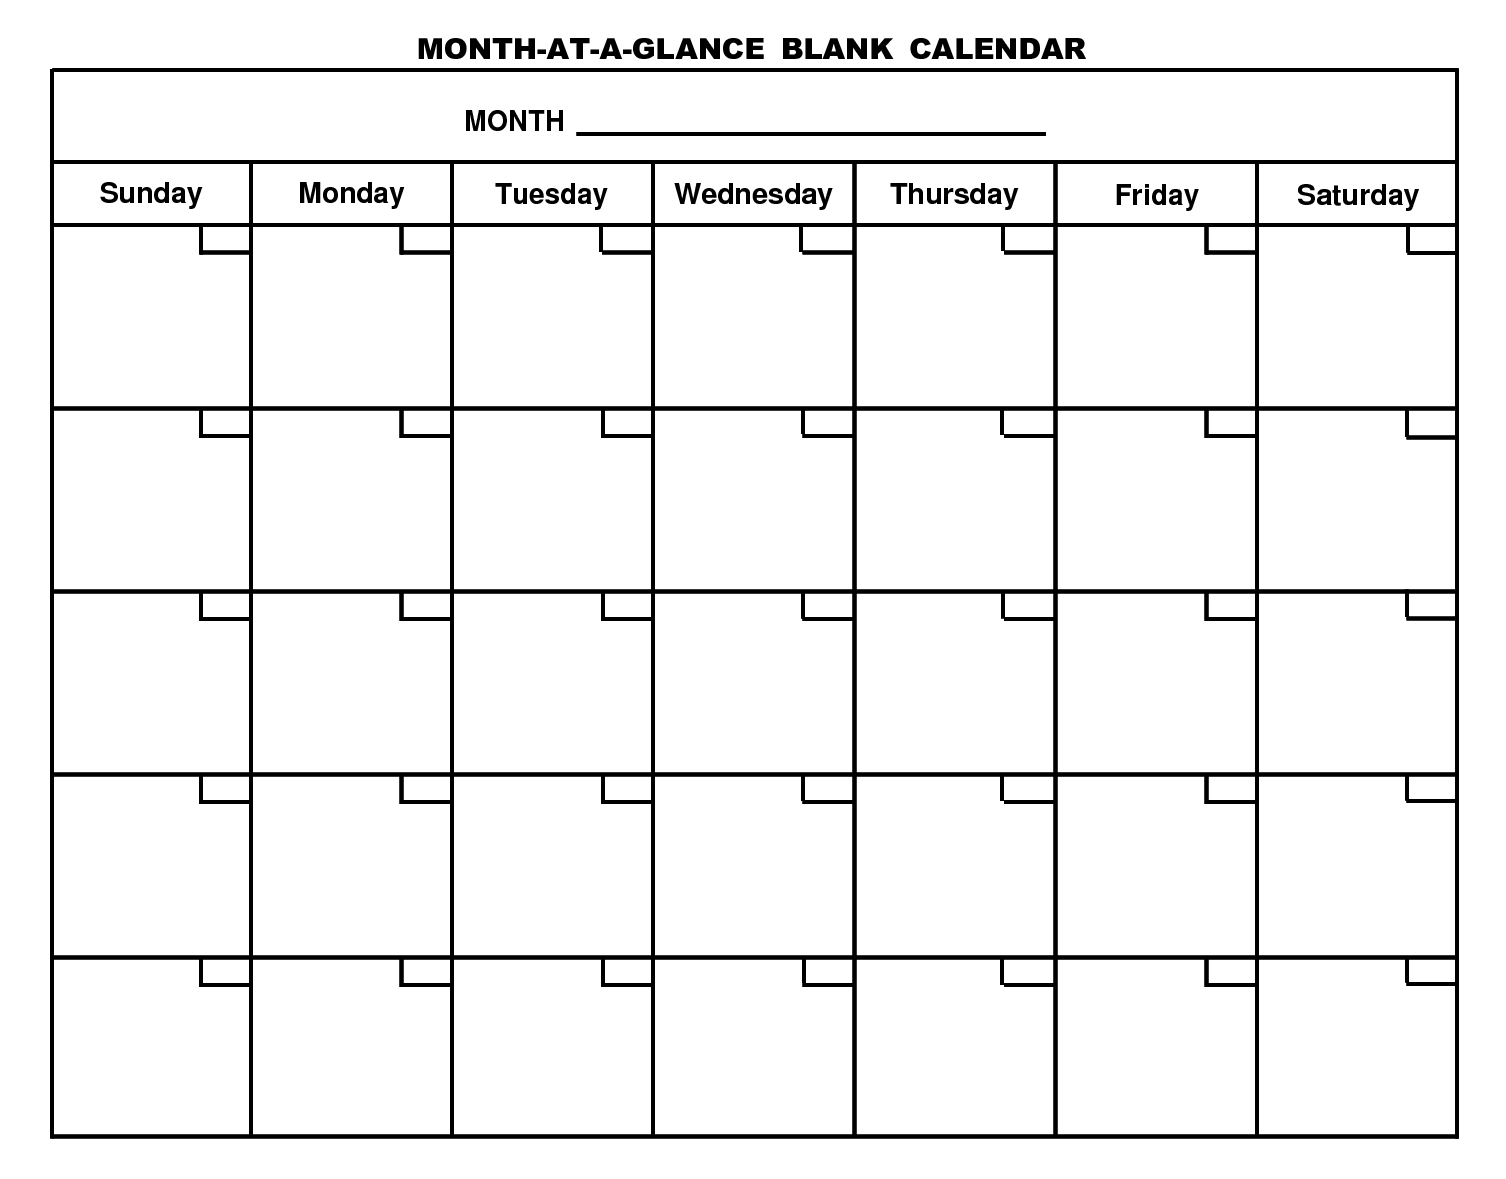 6 Best Images of Month At A Glance Blank Calendar Printable